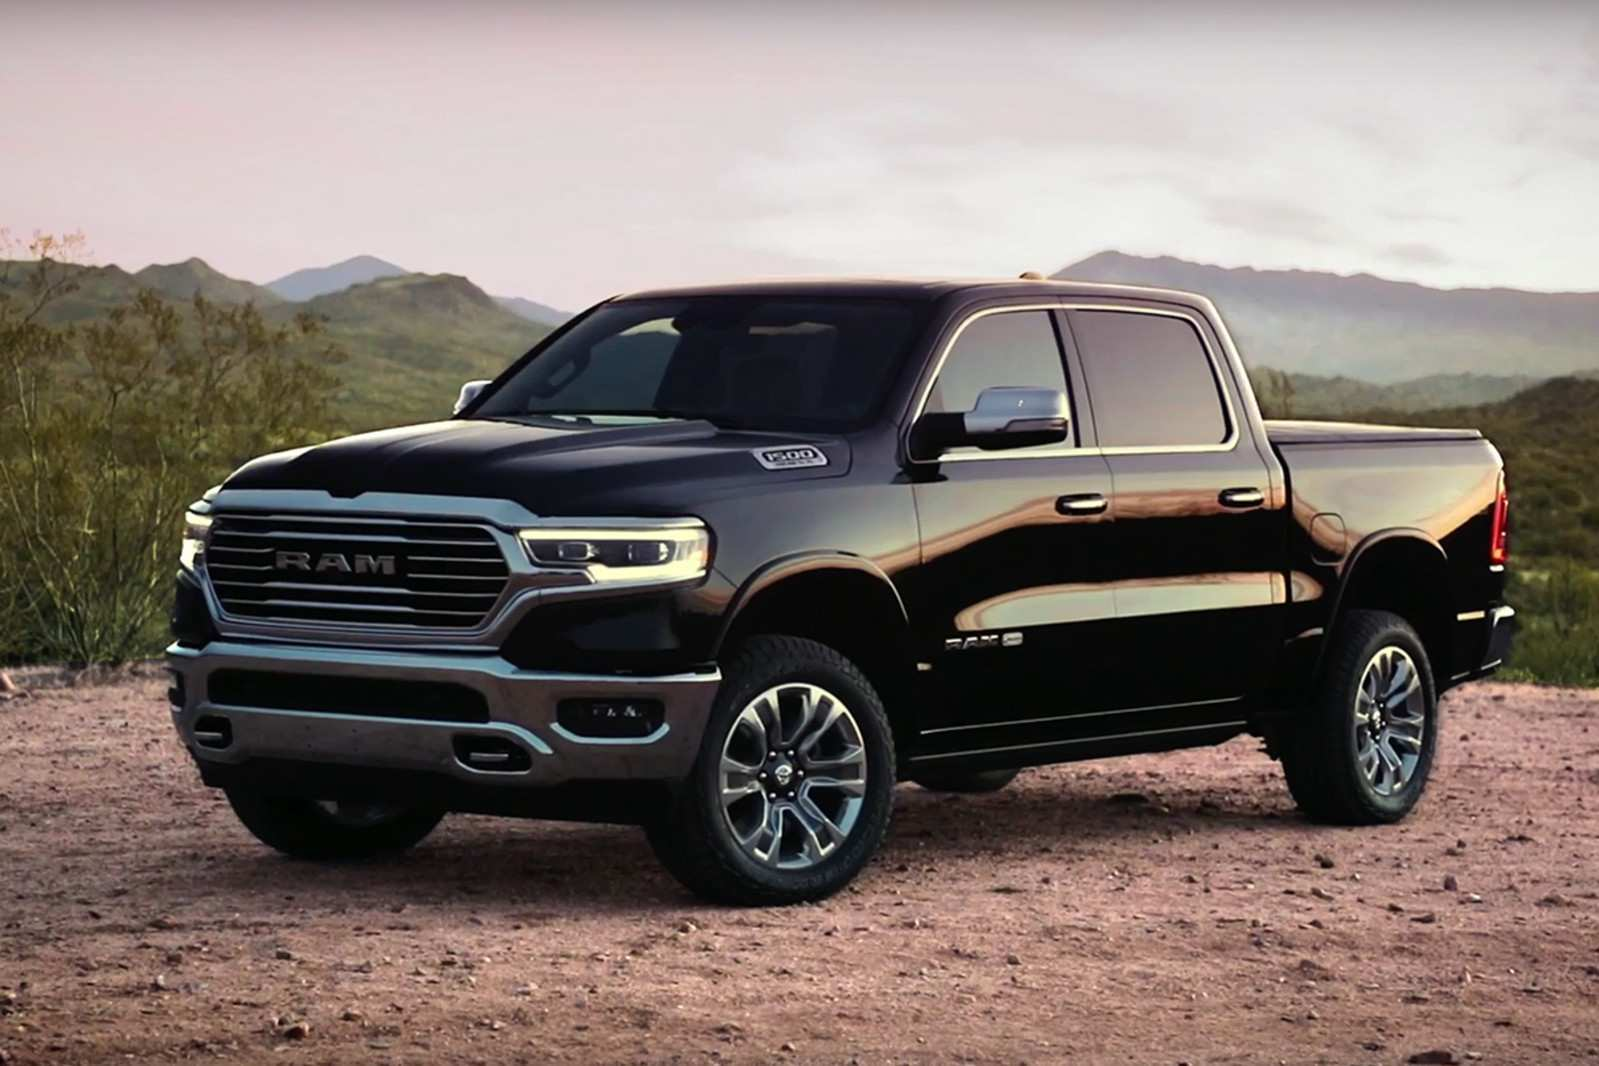 39 A 2019 Dodge Ram Body Style New Model and Performance